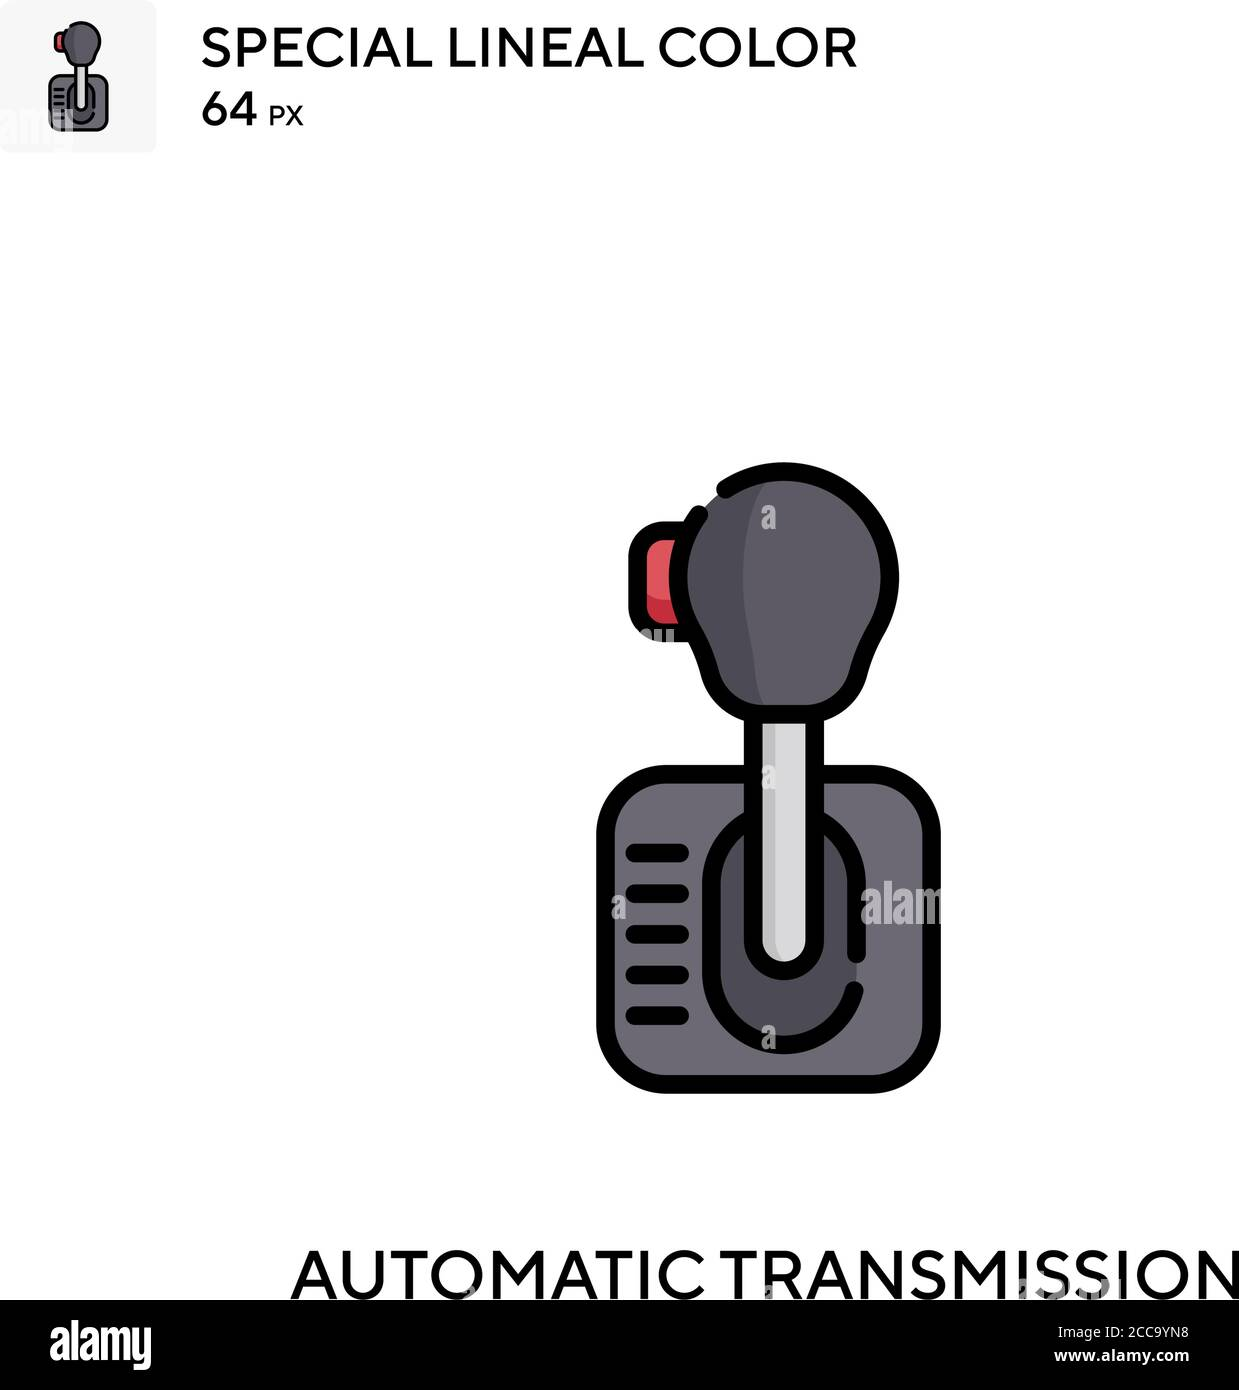 Automatic Transmission Vector Vectors High Resolution Stock Photography And Images Alamy